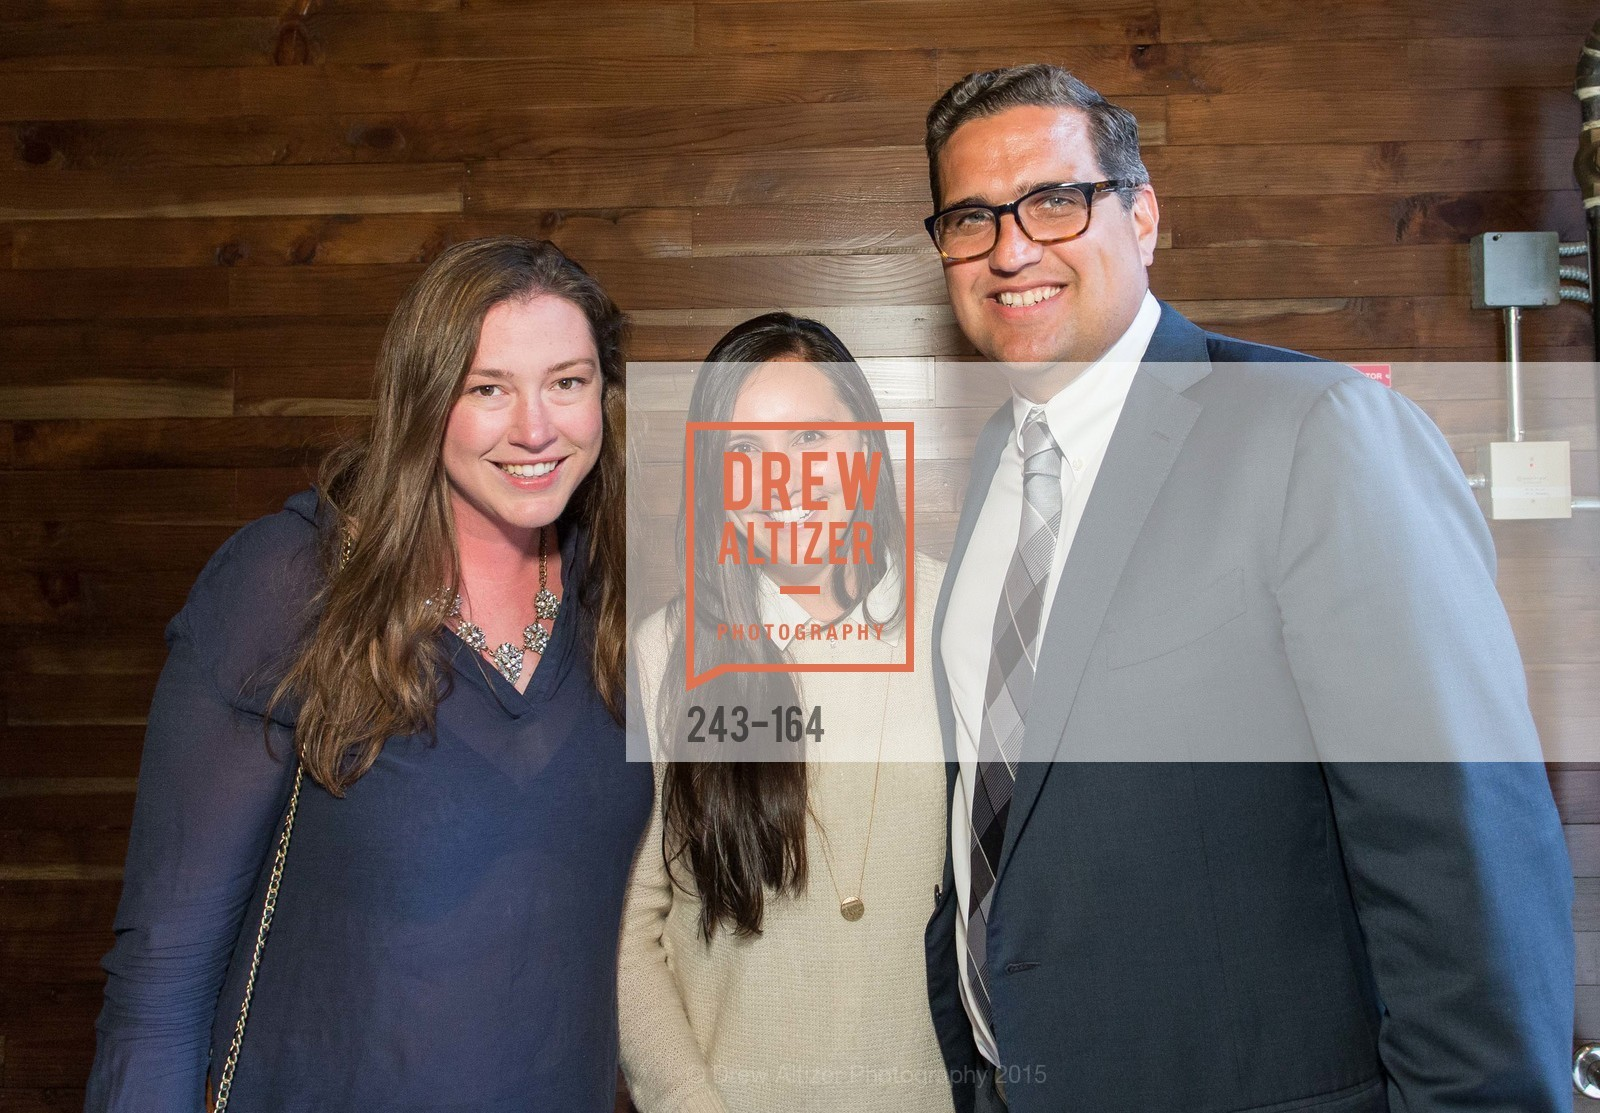 Amanda Pouchot, Melissa Cunningham, Peter Stern, Forgery Bar Opening Celebration, Forgery Bar. 152 Mission St, June 14th, 2015,Drew Altizer, Drew Altizer Photography, full-service agency, private events, San Francisco photographer, photographer california